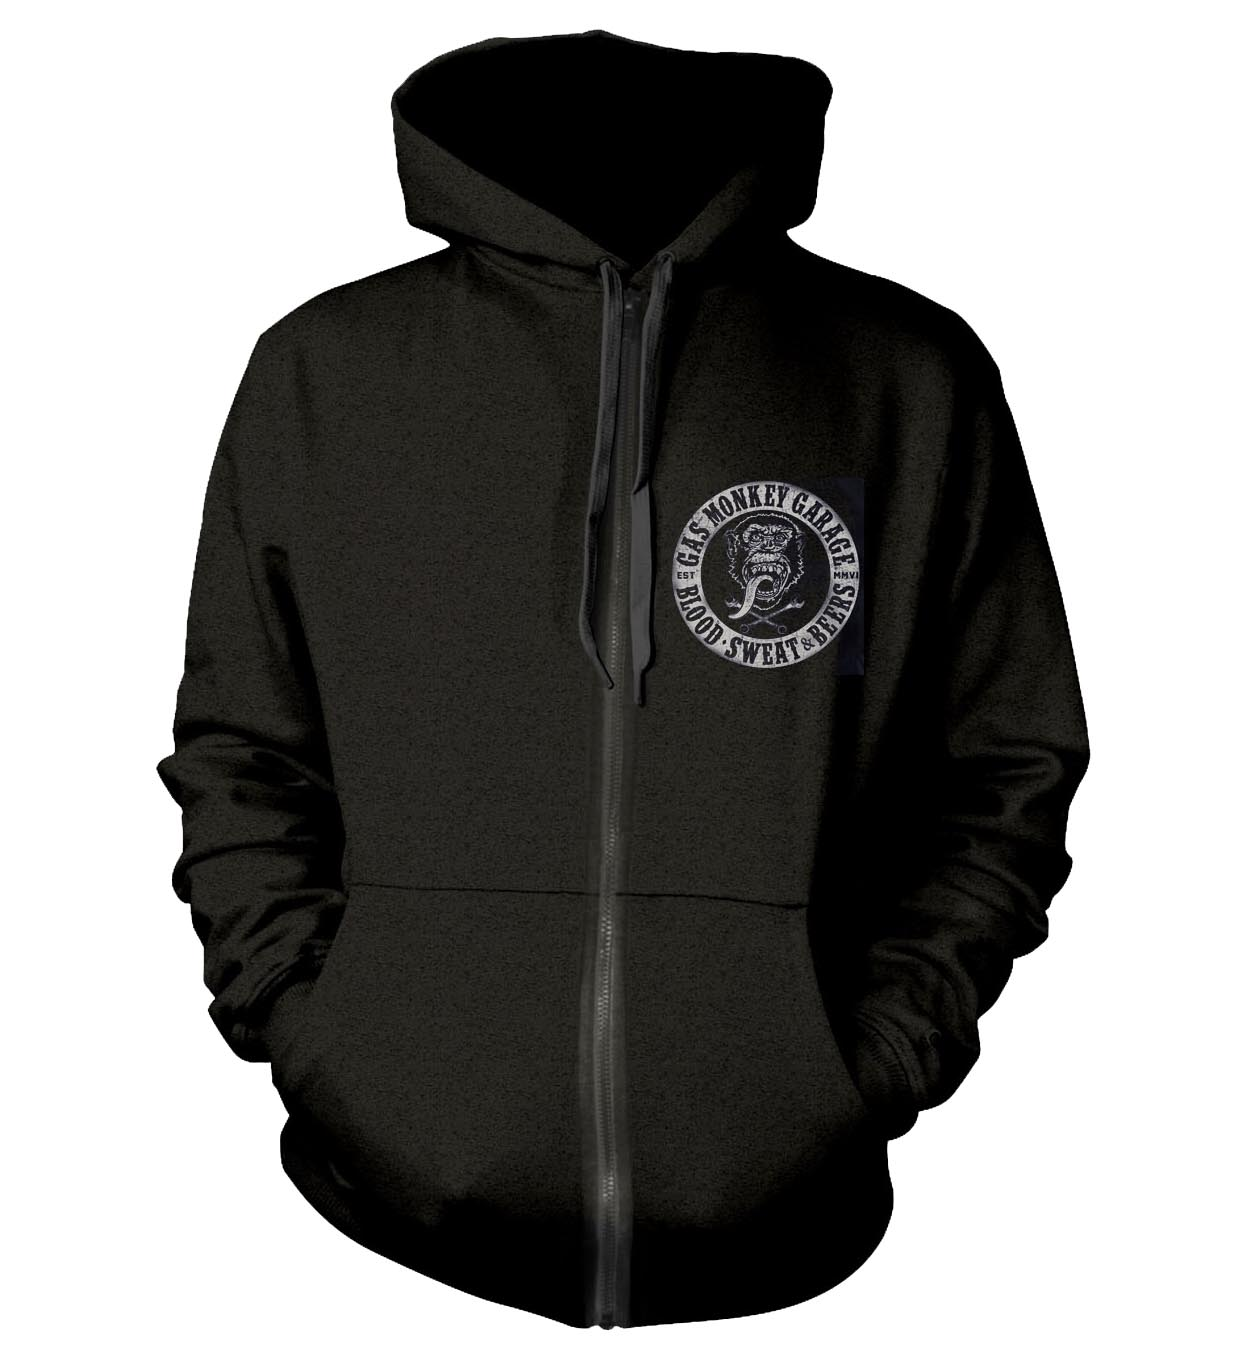 Official-PH-GAS-MONKEY-GARAGE-Hoody-Hoodie-Distressed-LOGO-Zip-All-Sizes thumbnail 11